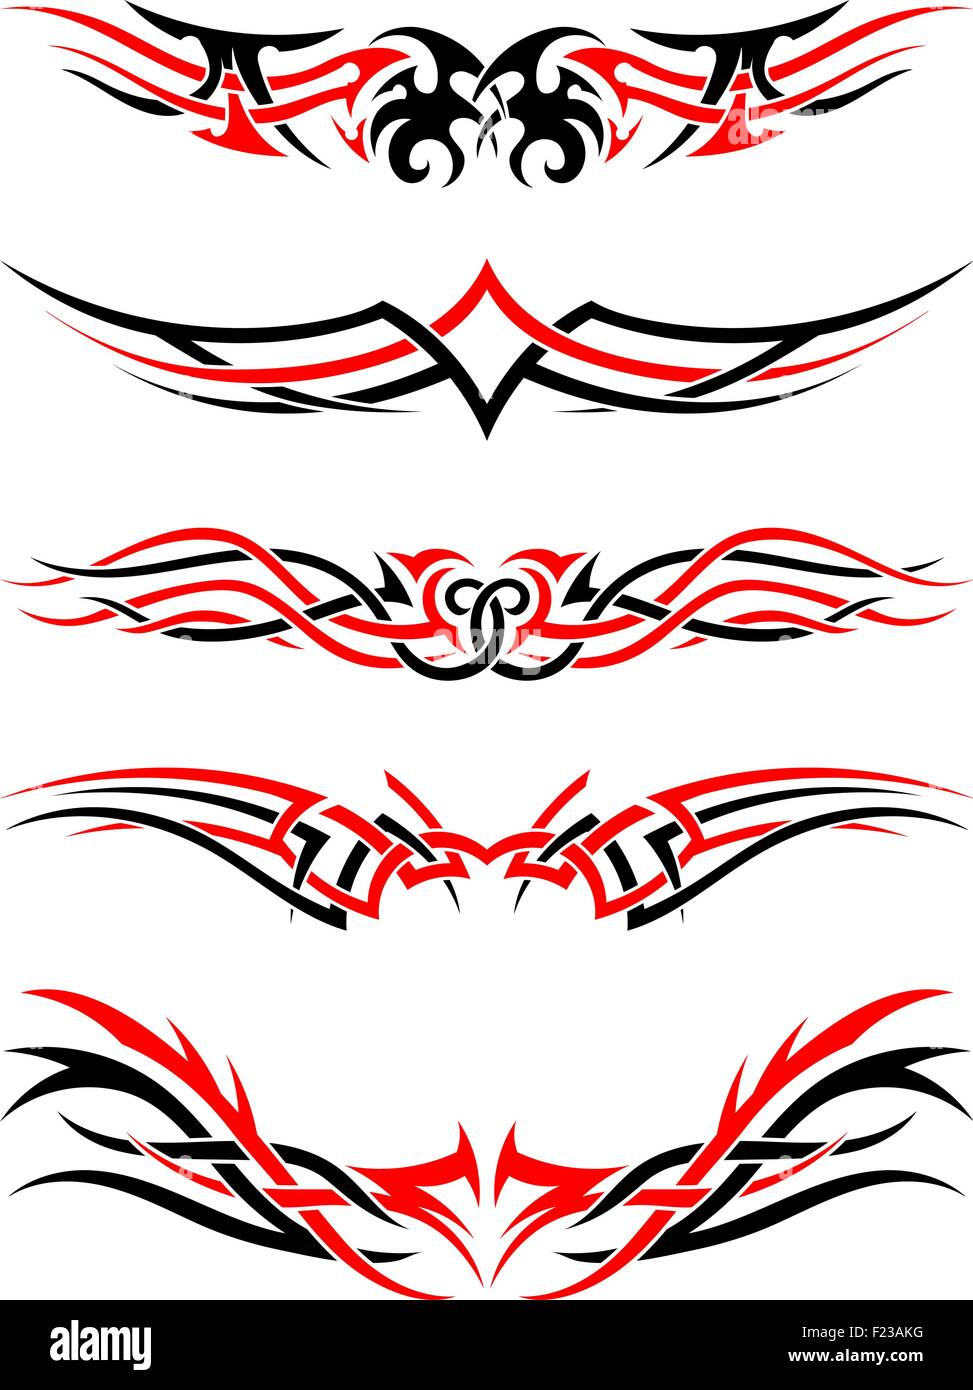 ff5f944726668 Set of Tribal Indigenous Tattoos in Black and Red Colors. Elegant Smooth  Design Over White Background. Vector Illustration.